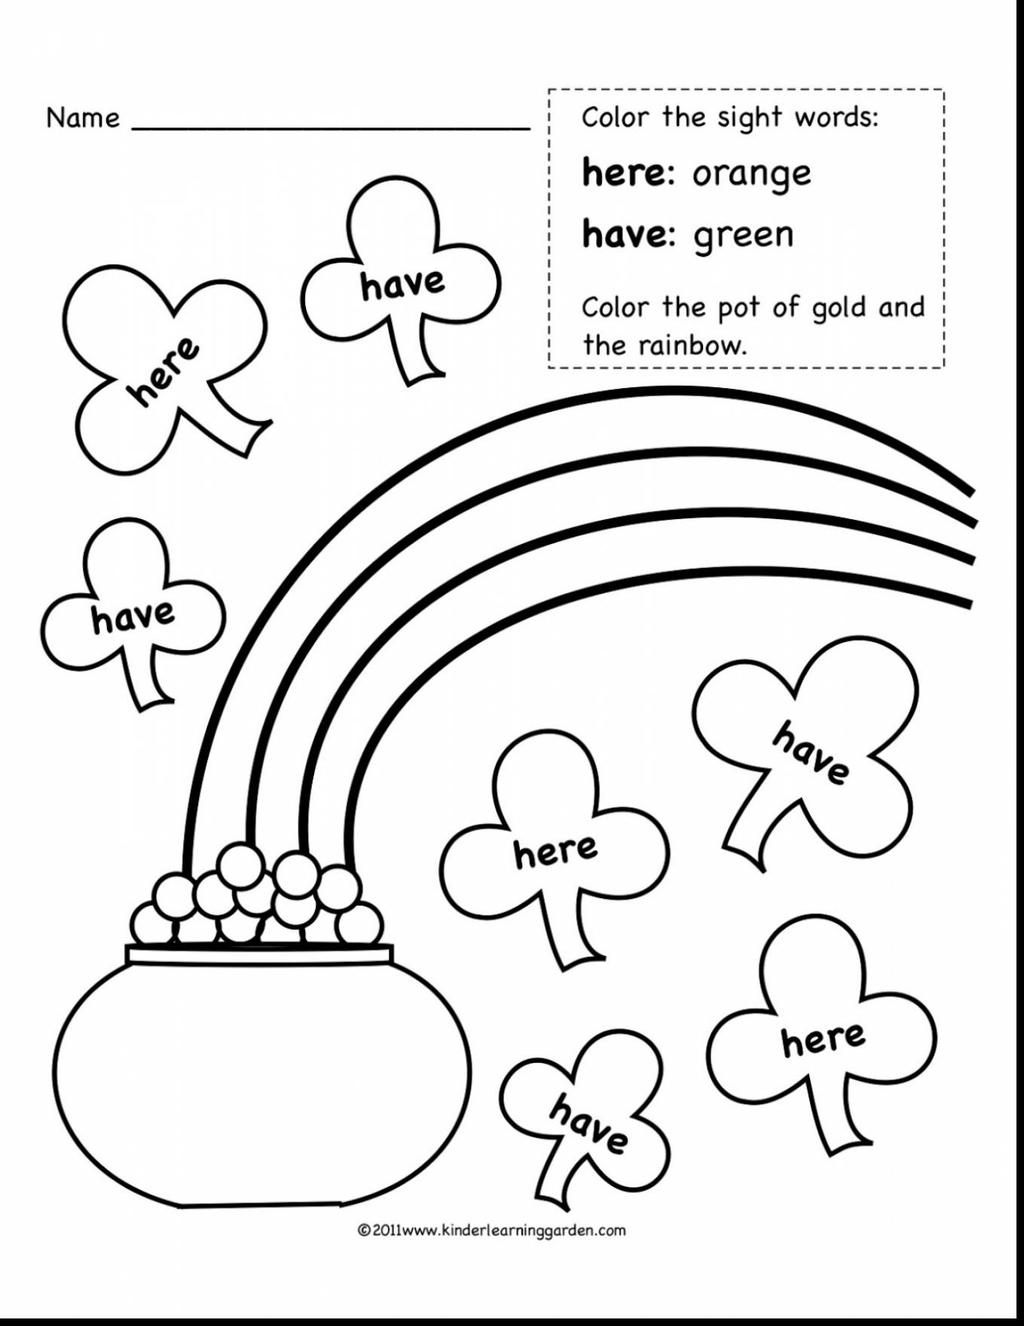 image relating to Free Printable Sight Word Books for First Grade named Very first Quality Sight Term Coloring Webpages Rainbow Phrases - No cost